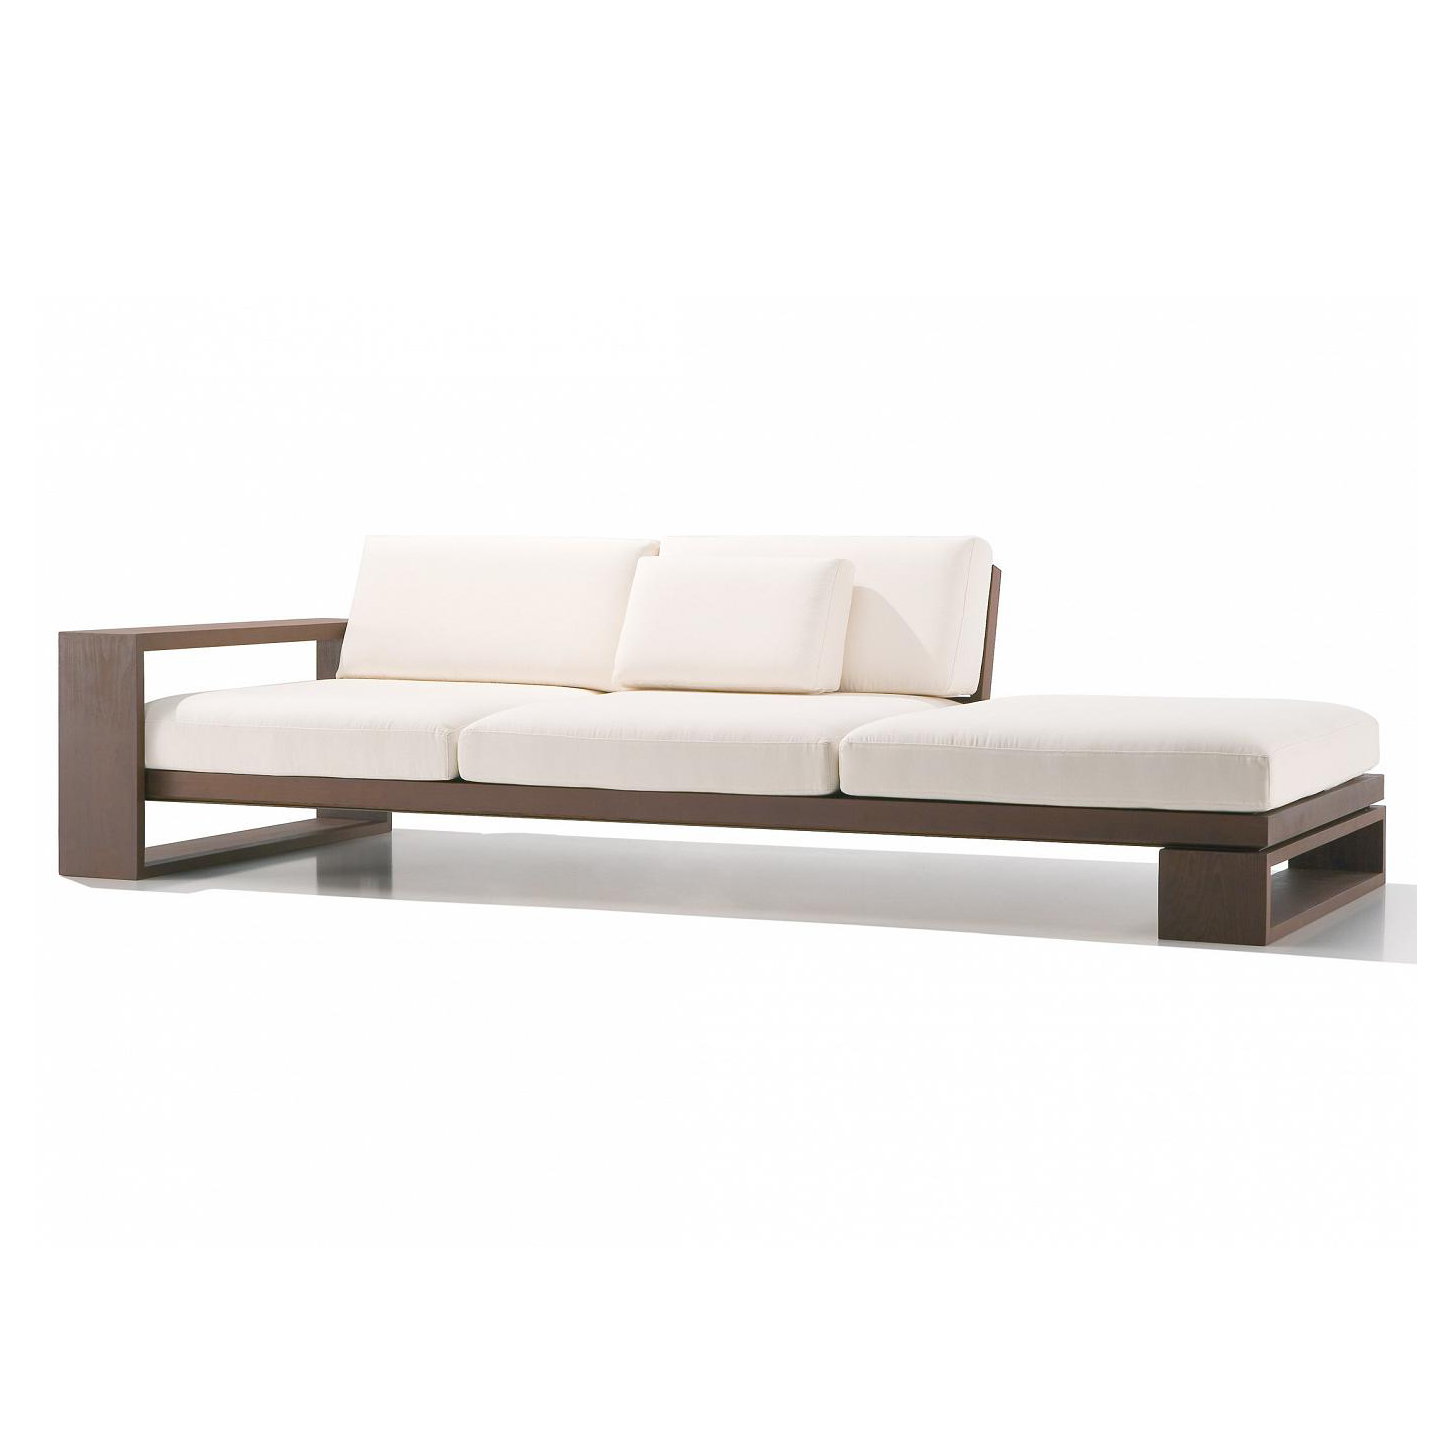 Chaise Lounge Archives Wooden Furniture in Teak wood Sofa